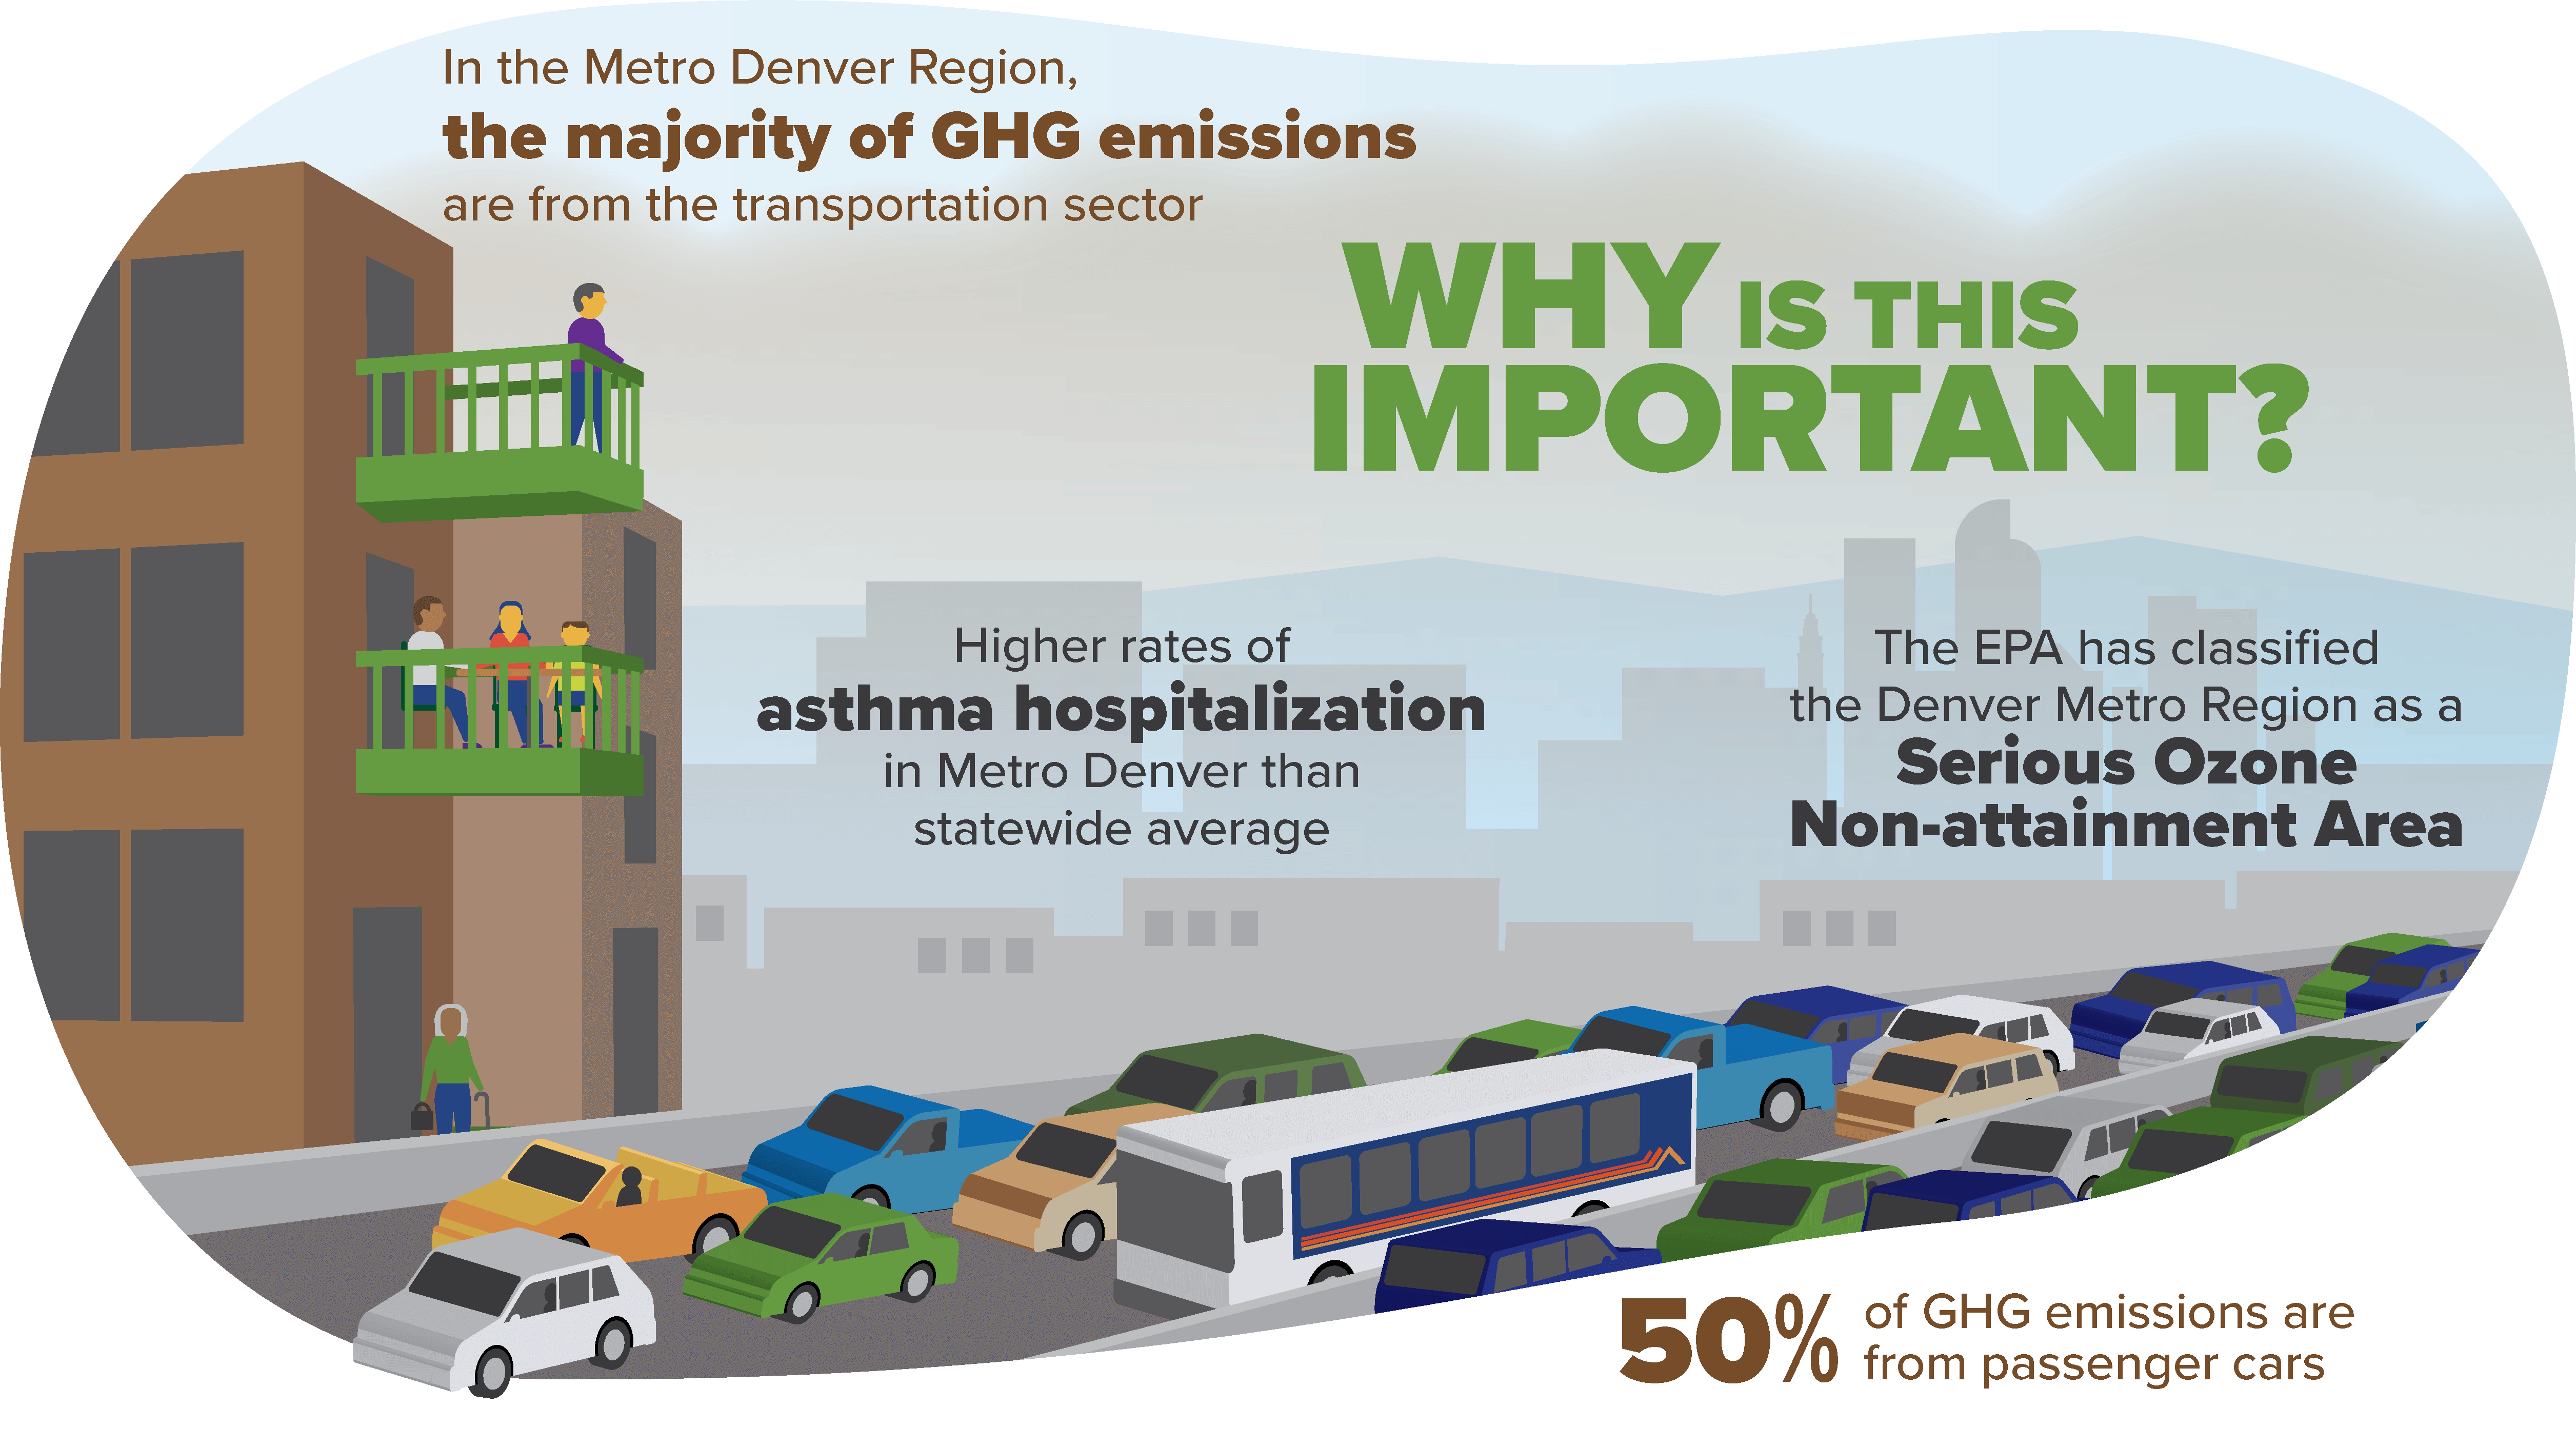 Infographic: Why is this important? In the Denver metro region, the majority of green house gases are from the transportation sector. The Denver metro has higher asthma hospitalization rates than Colorado overall. The Denver metro region has been classified as a serious ozone non-attainment area by the EPA. 50% of green house gas emissions are from passenger cars.